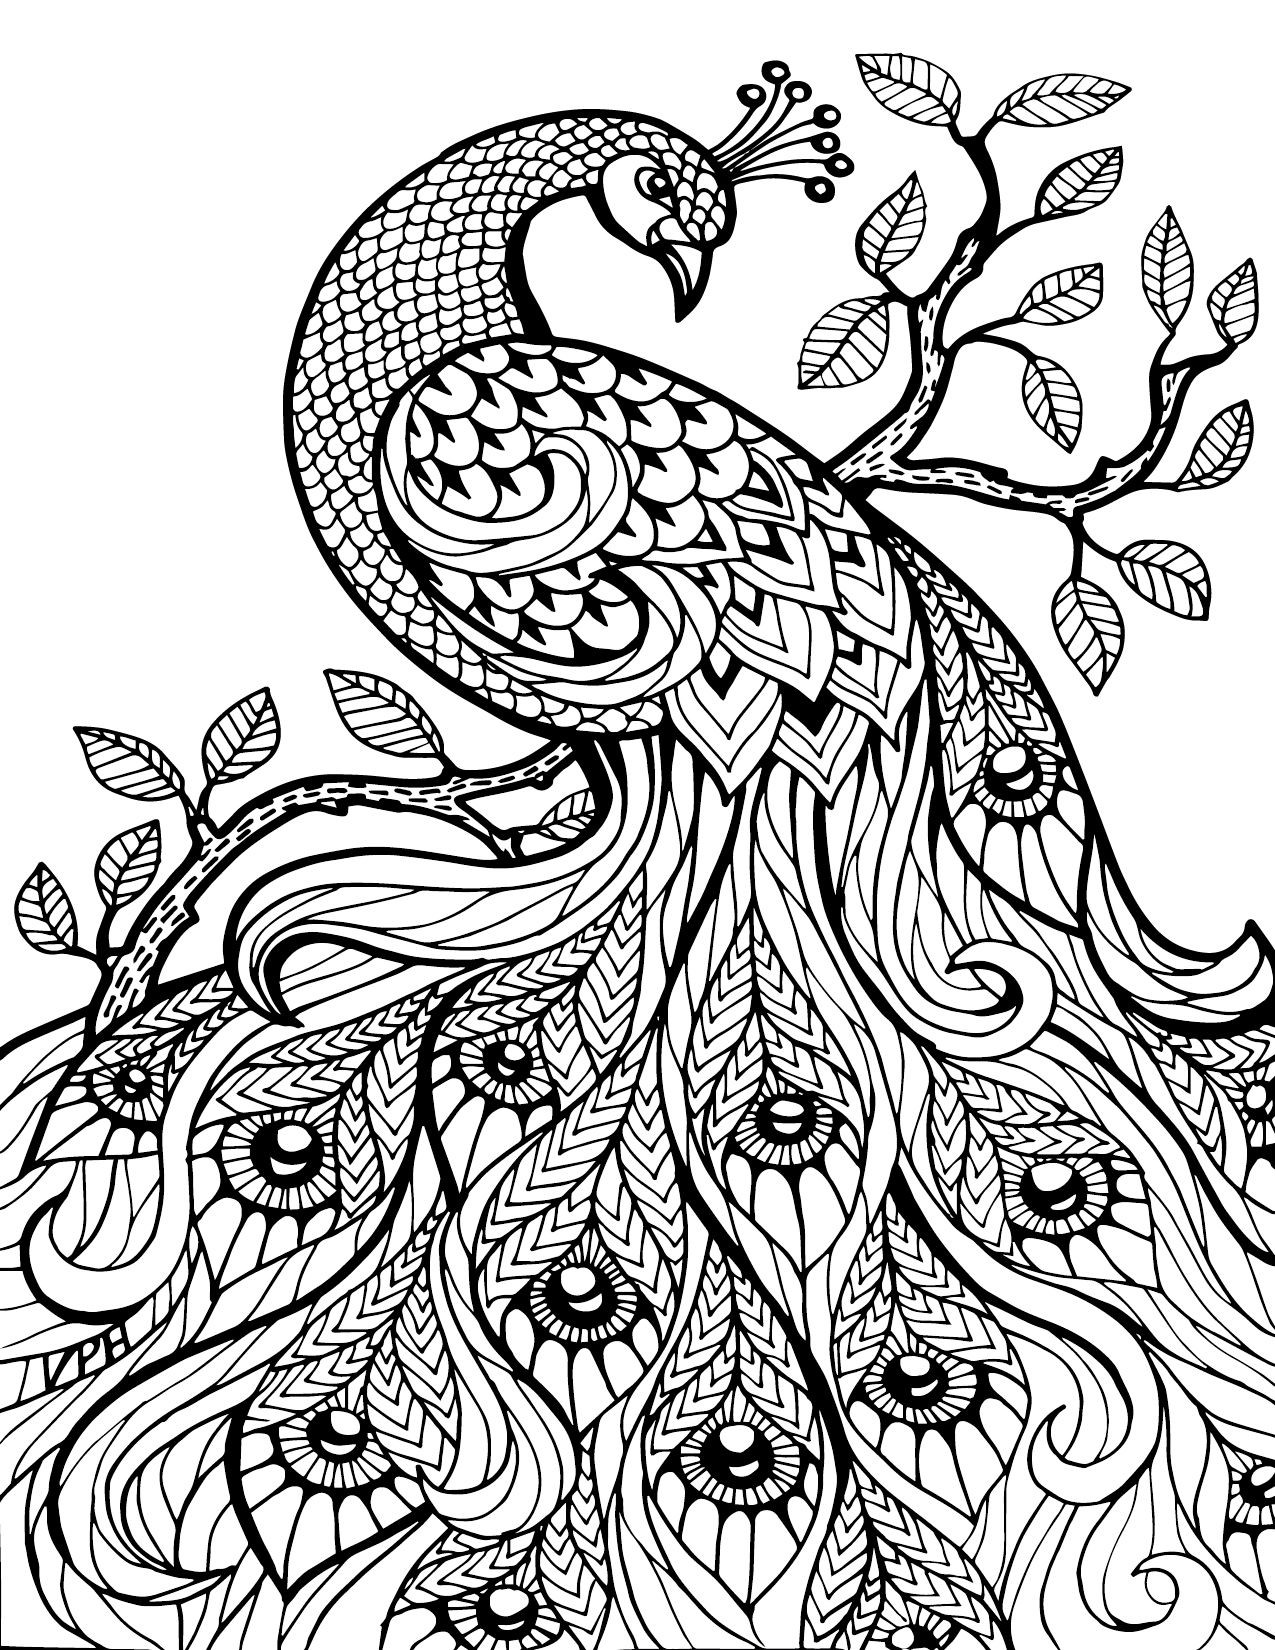 Best ideas about Free Printable Coloring Pages For Adults Only . Save or Pin Free Printable Coloring Pages For Adults ly Image 36 Art Now.